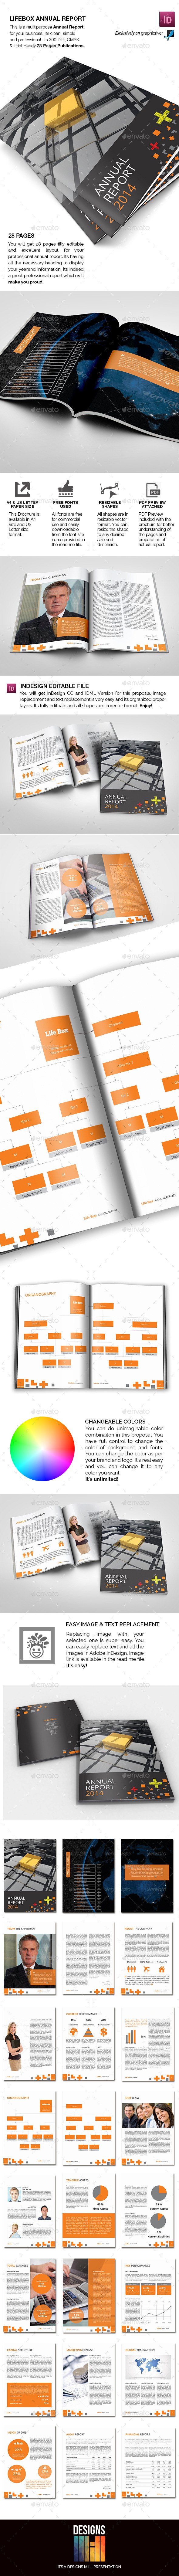 GraphicRiver Lifebox Annual Report 9175942